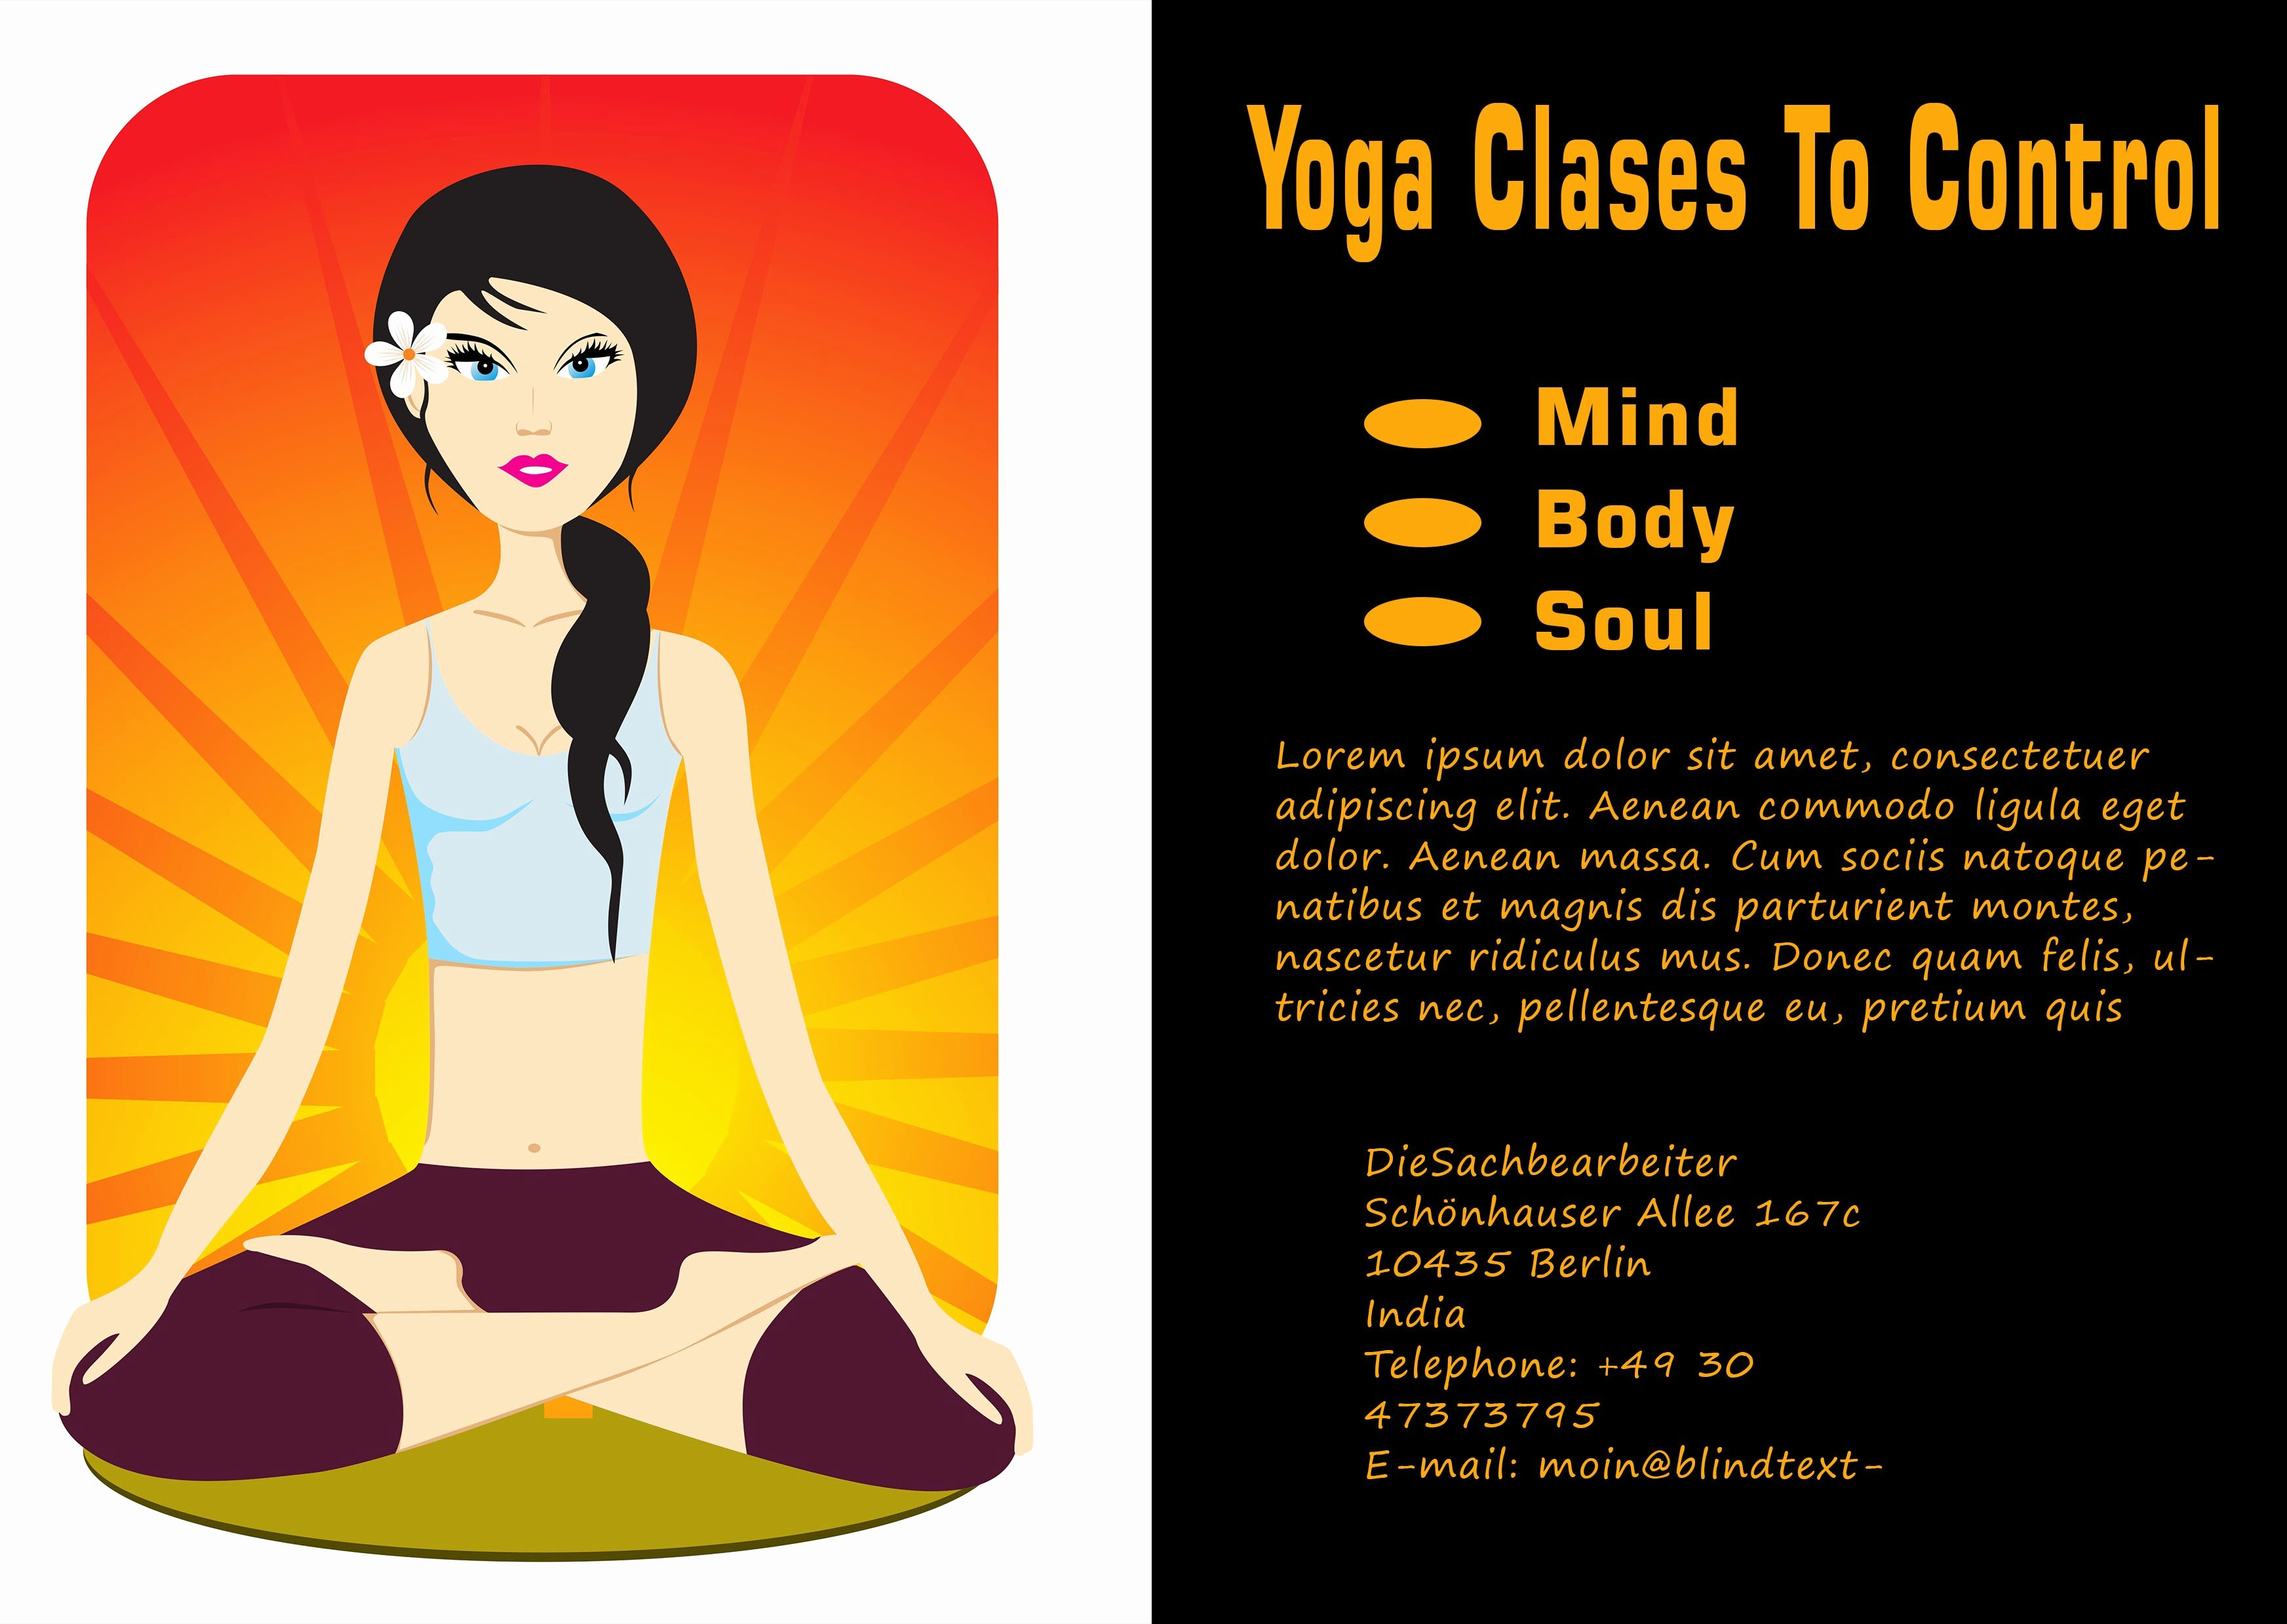 Yoga Flyers Free Template Inspirational 20 Distinctive Yoga Flyer Templates Free for Professionals